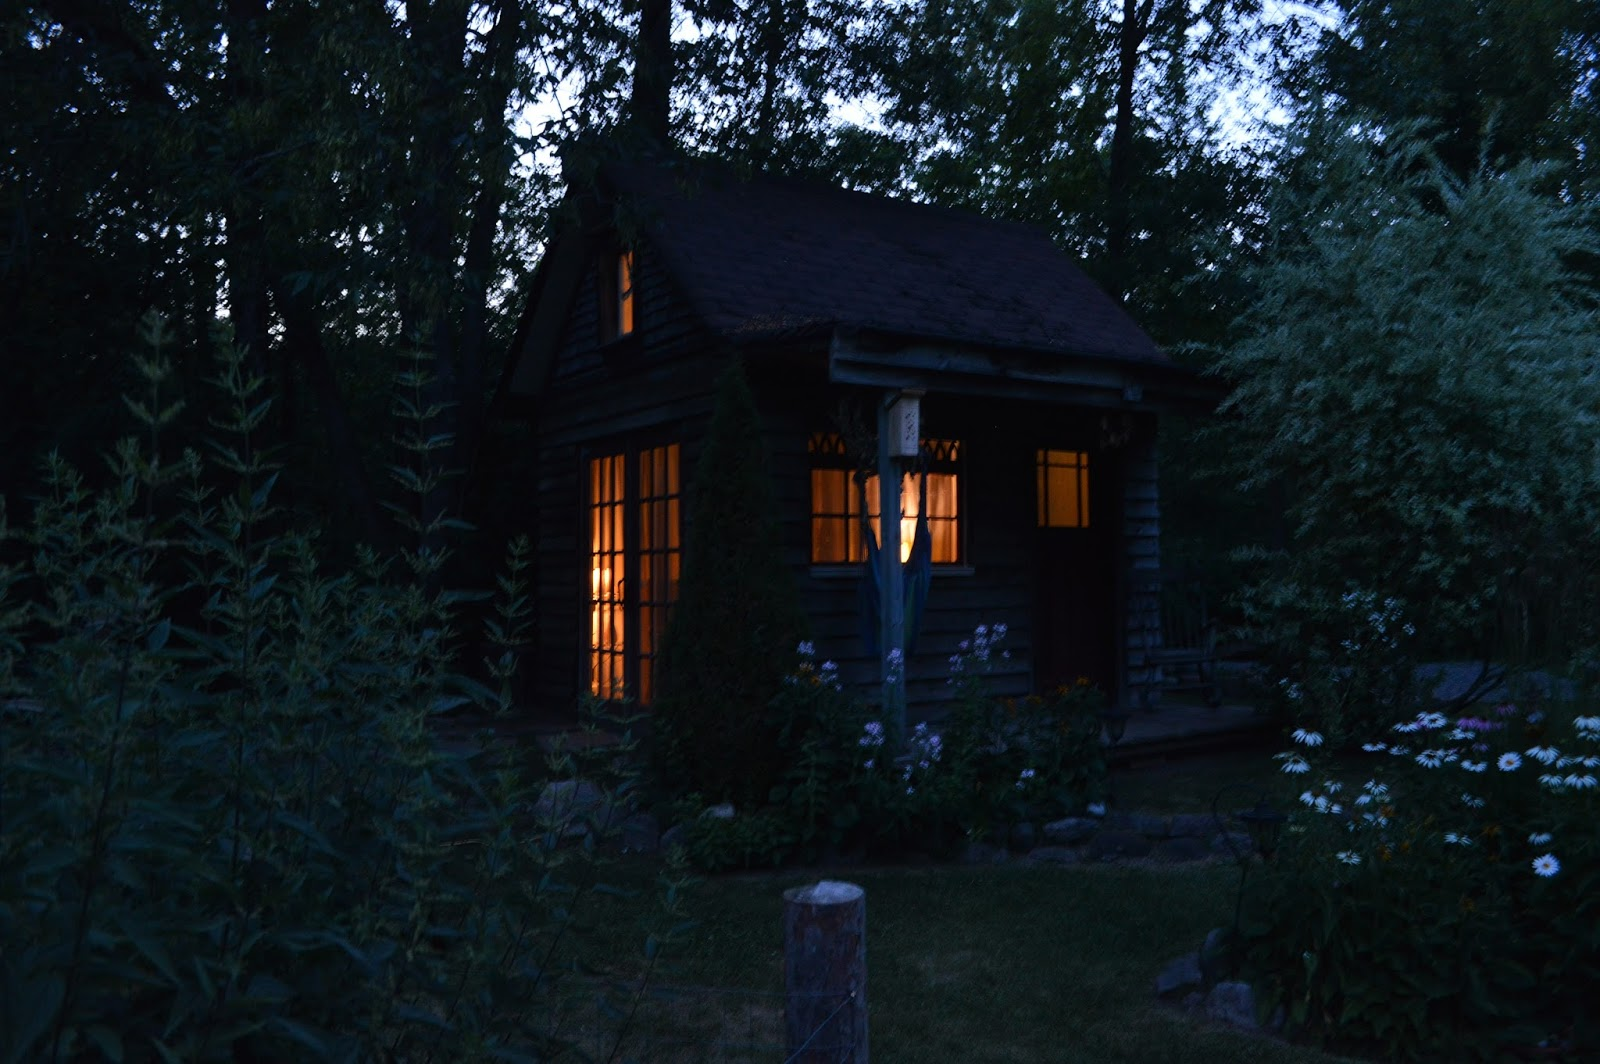 We Left The Lights On In Cottage Other Night And As Sun Set It Stood Glowing Our Backyard Exuding Beauty Peace